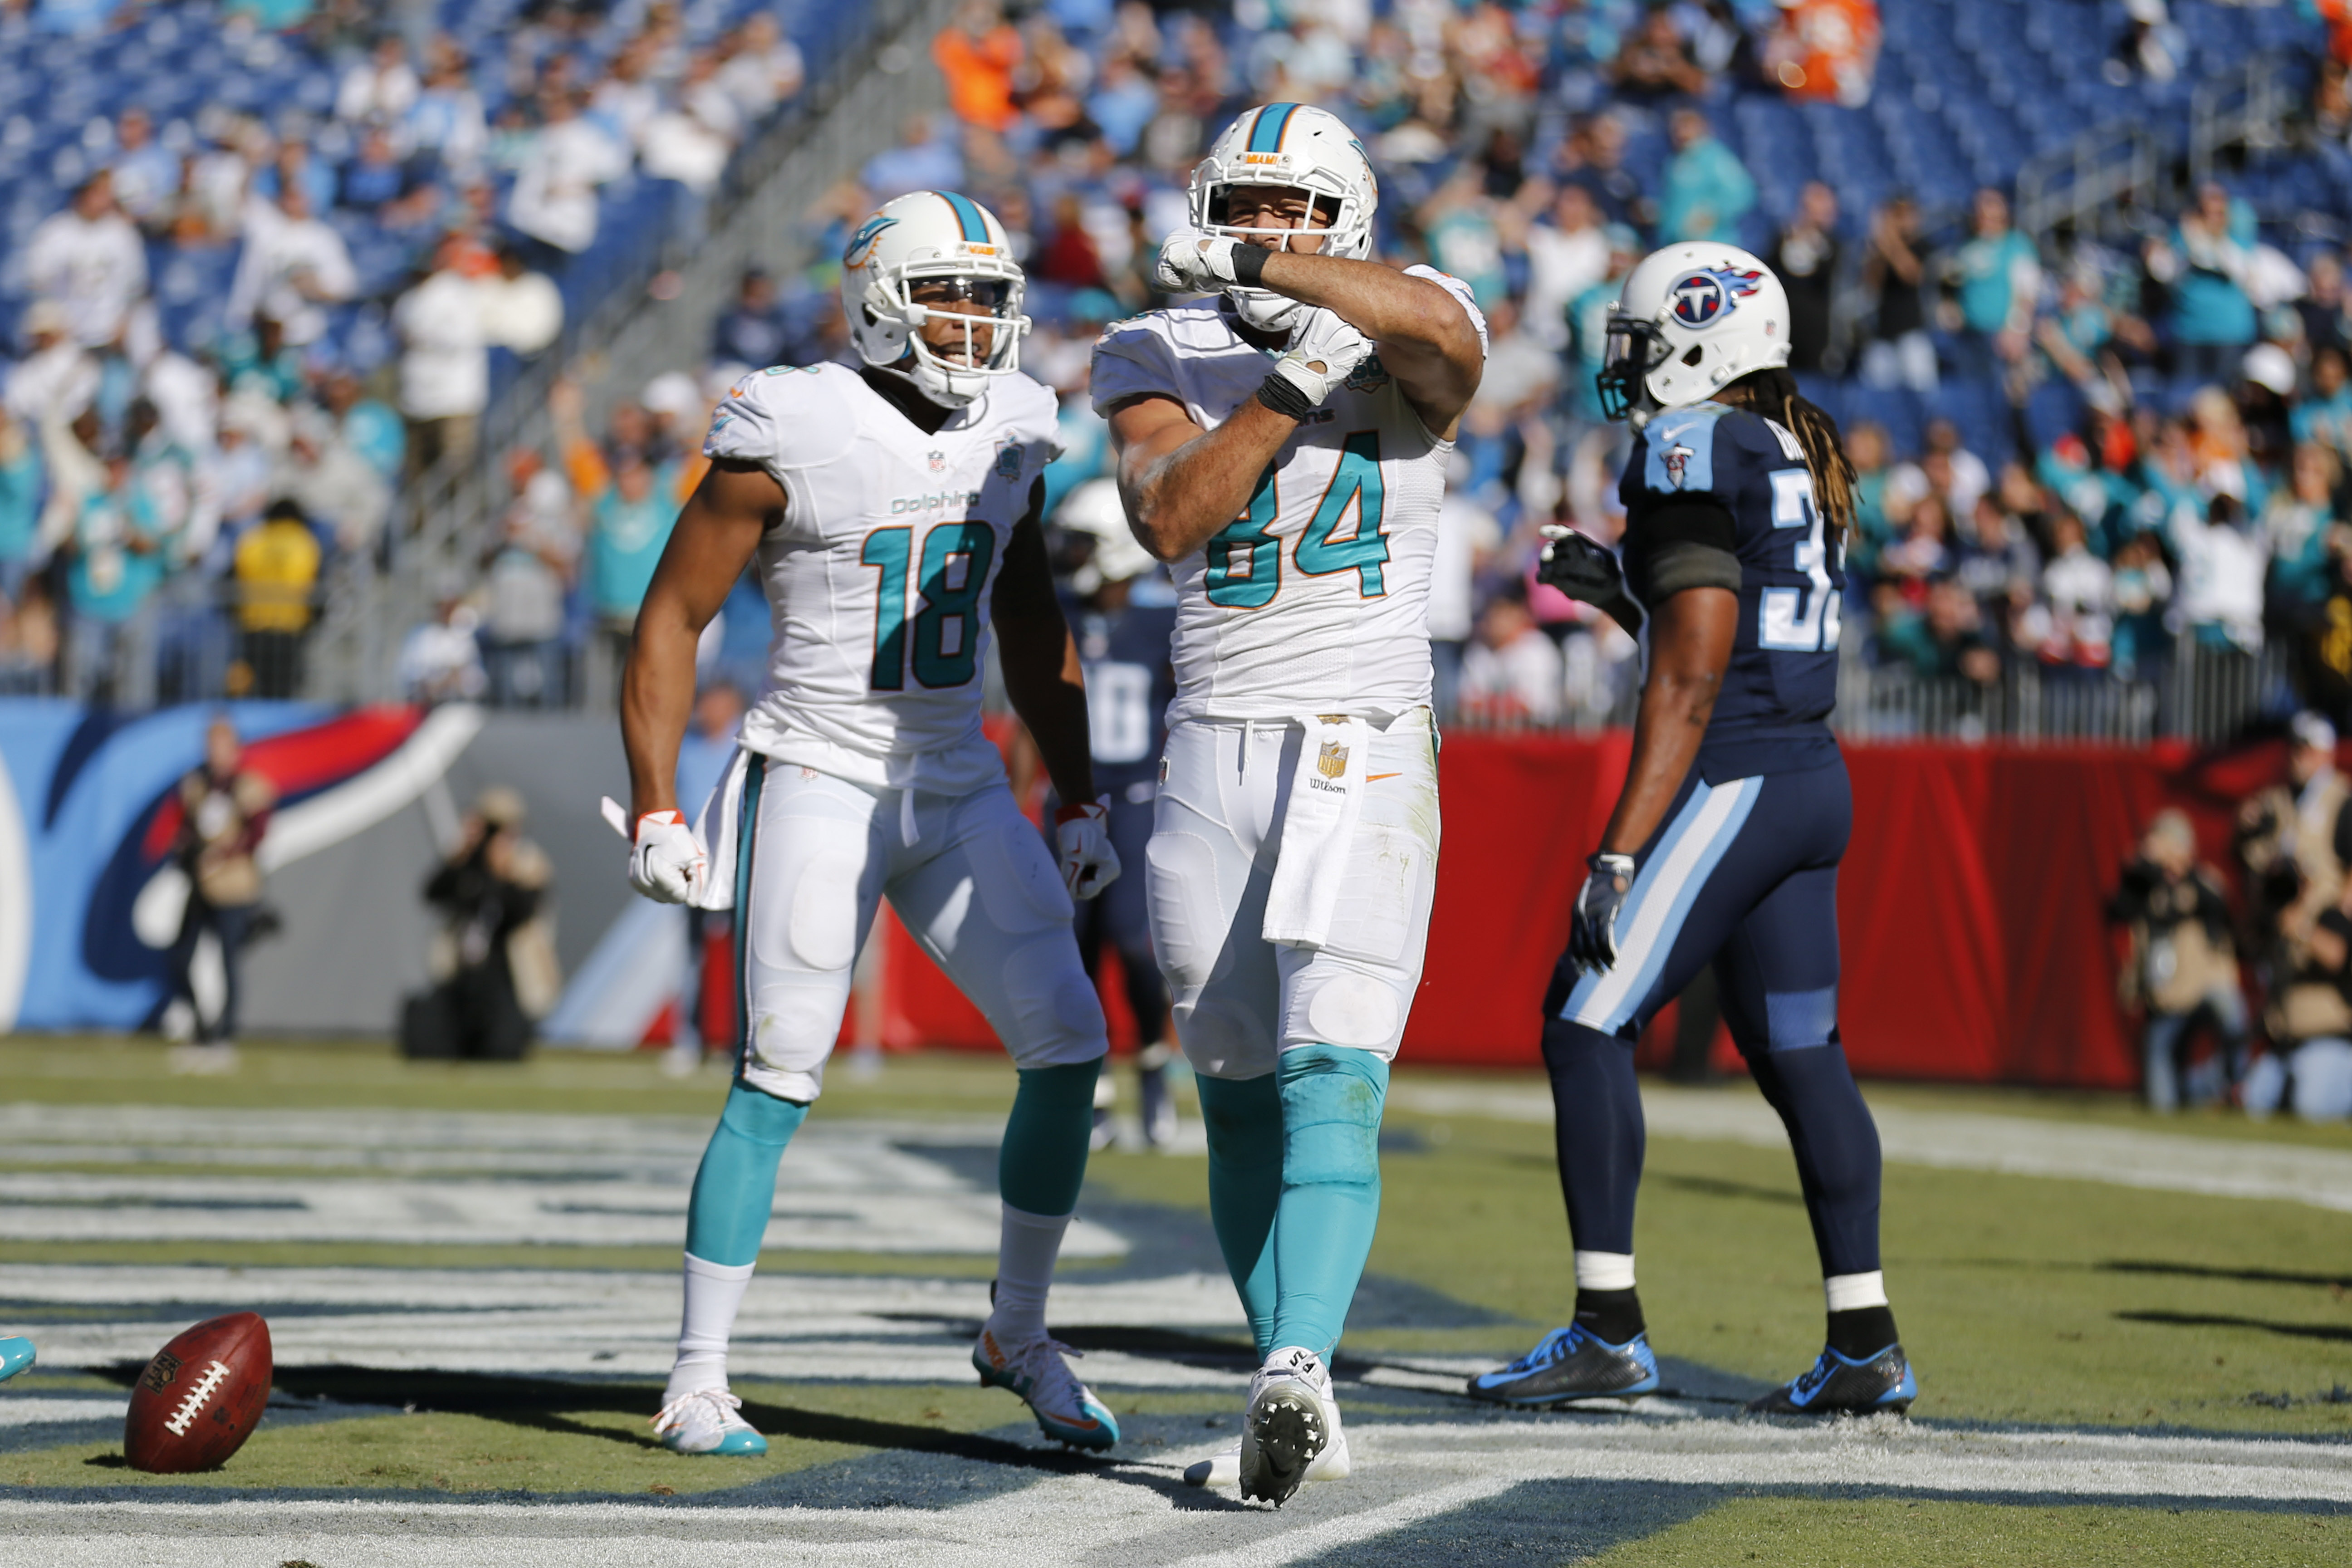 Miami Dolphins tight end Jordan Cameron (84) celebrates after catching a 12-yard touchdown pass against the Tennessee Titans in the second half of an NFL football game Sunday, Oct. 18, 2015, in Nashville, Tenn. At left is Dolphins wide receiver Rishard Ma